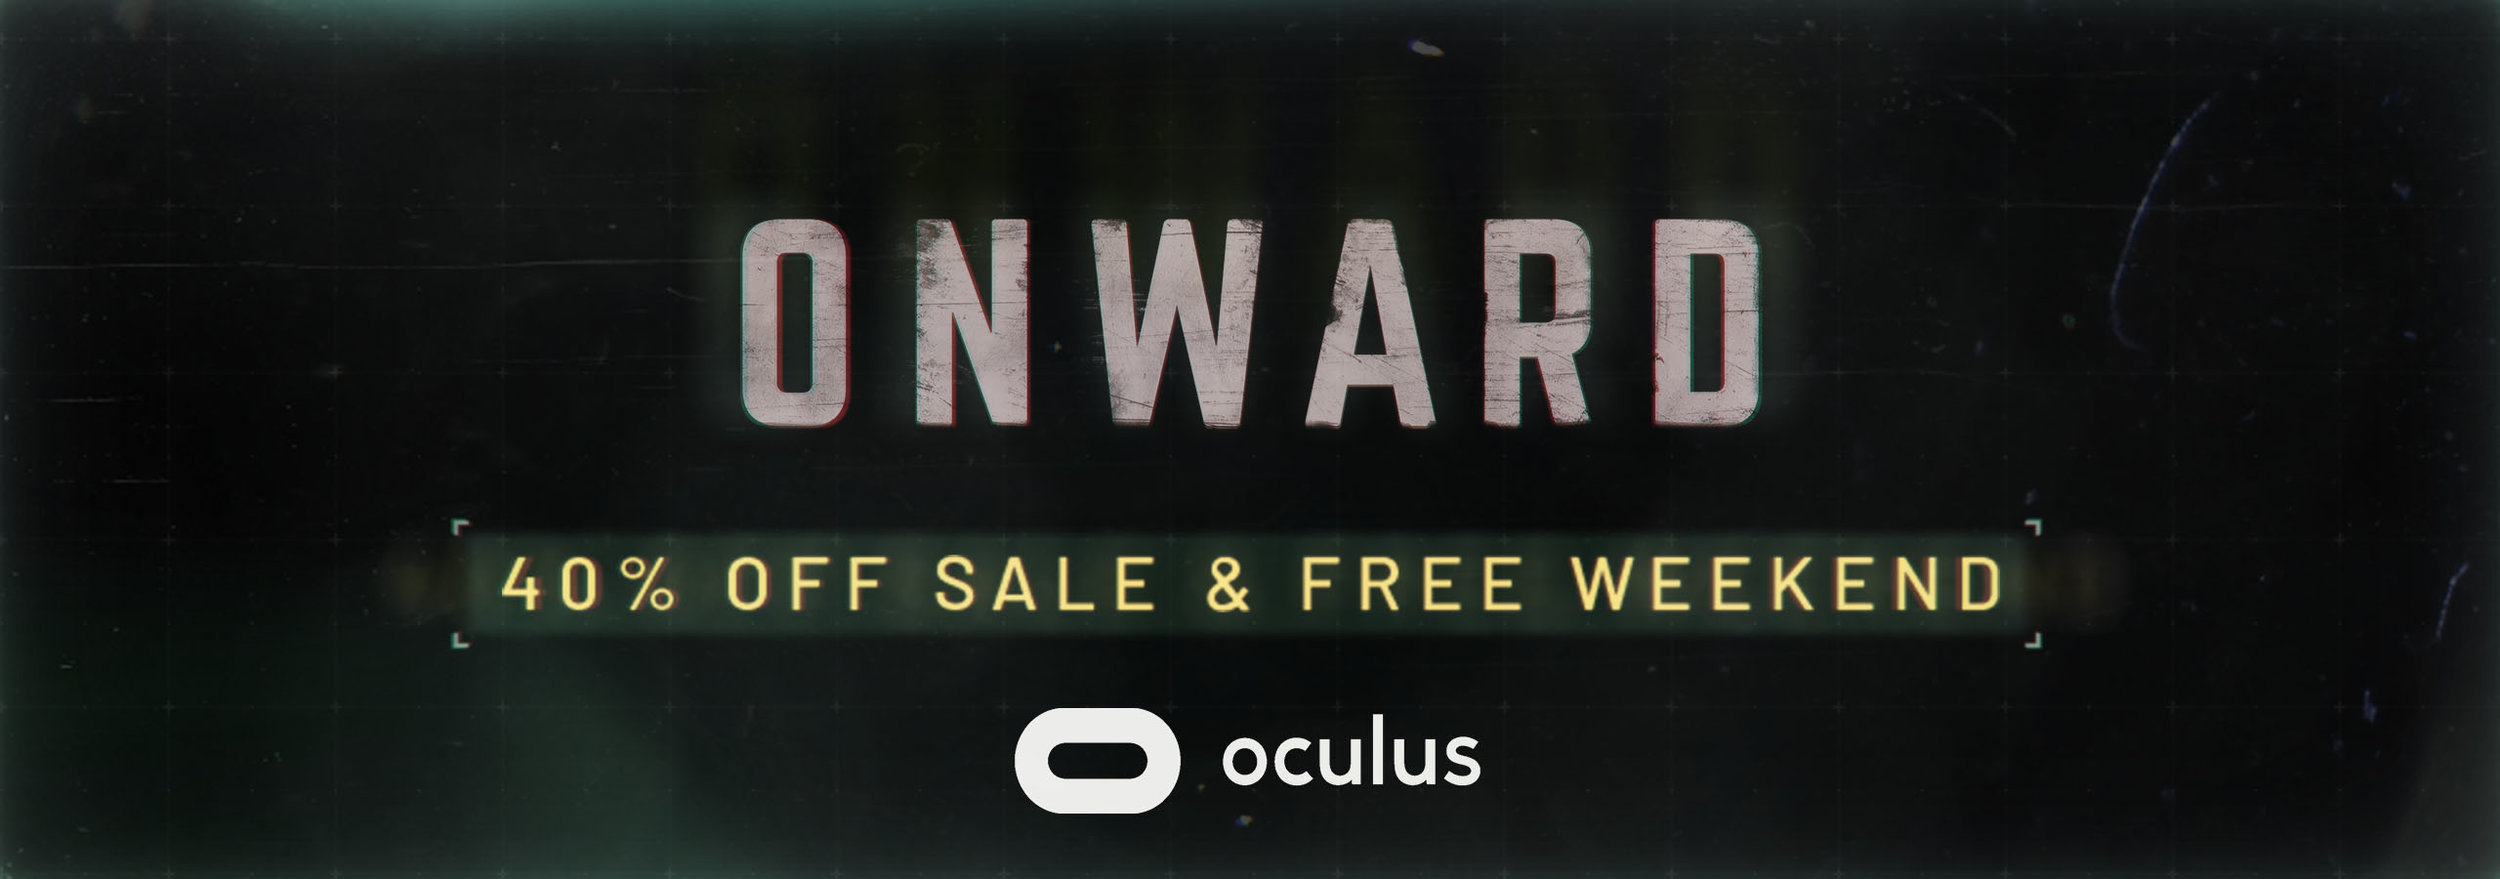 onward_free weekend_oculus.jpg